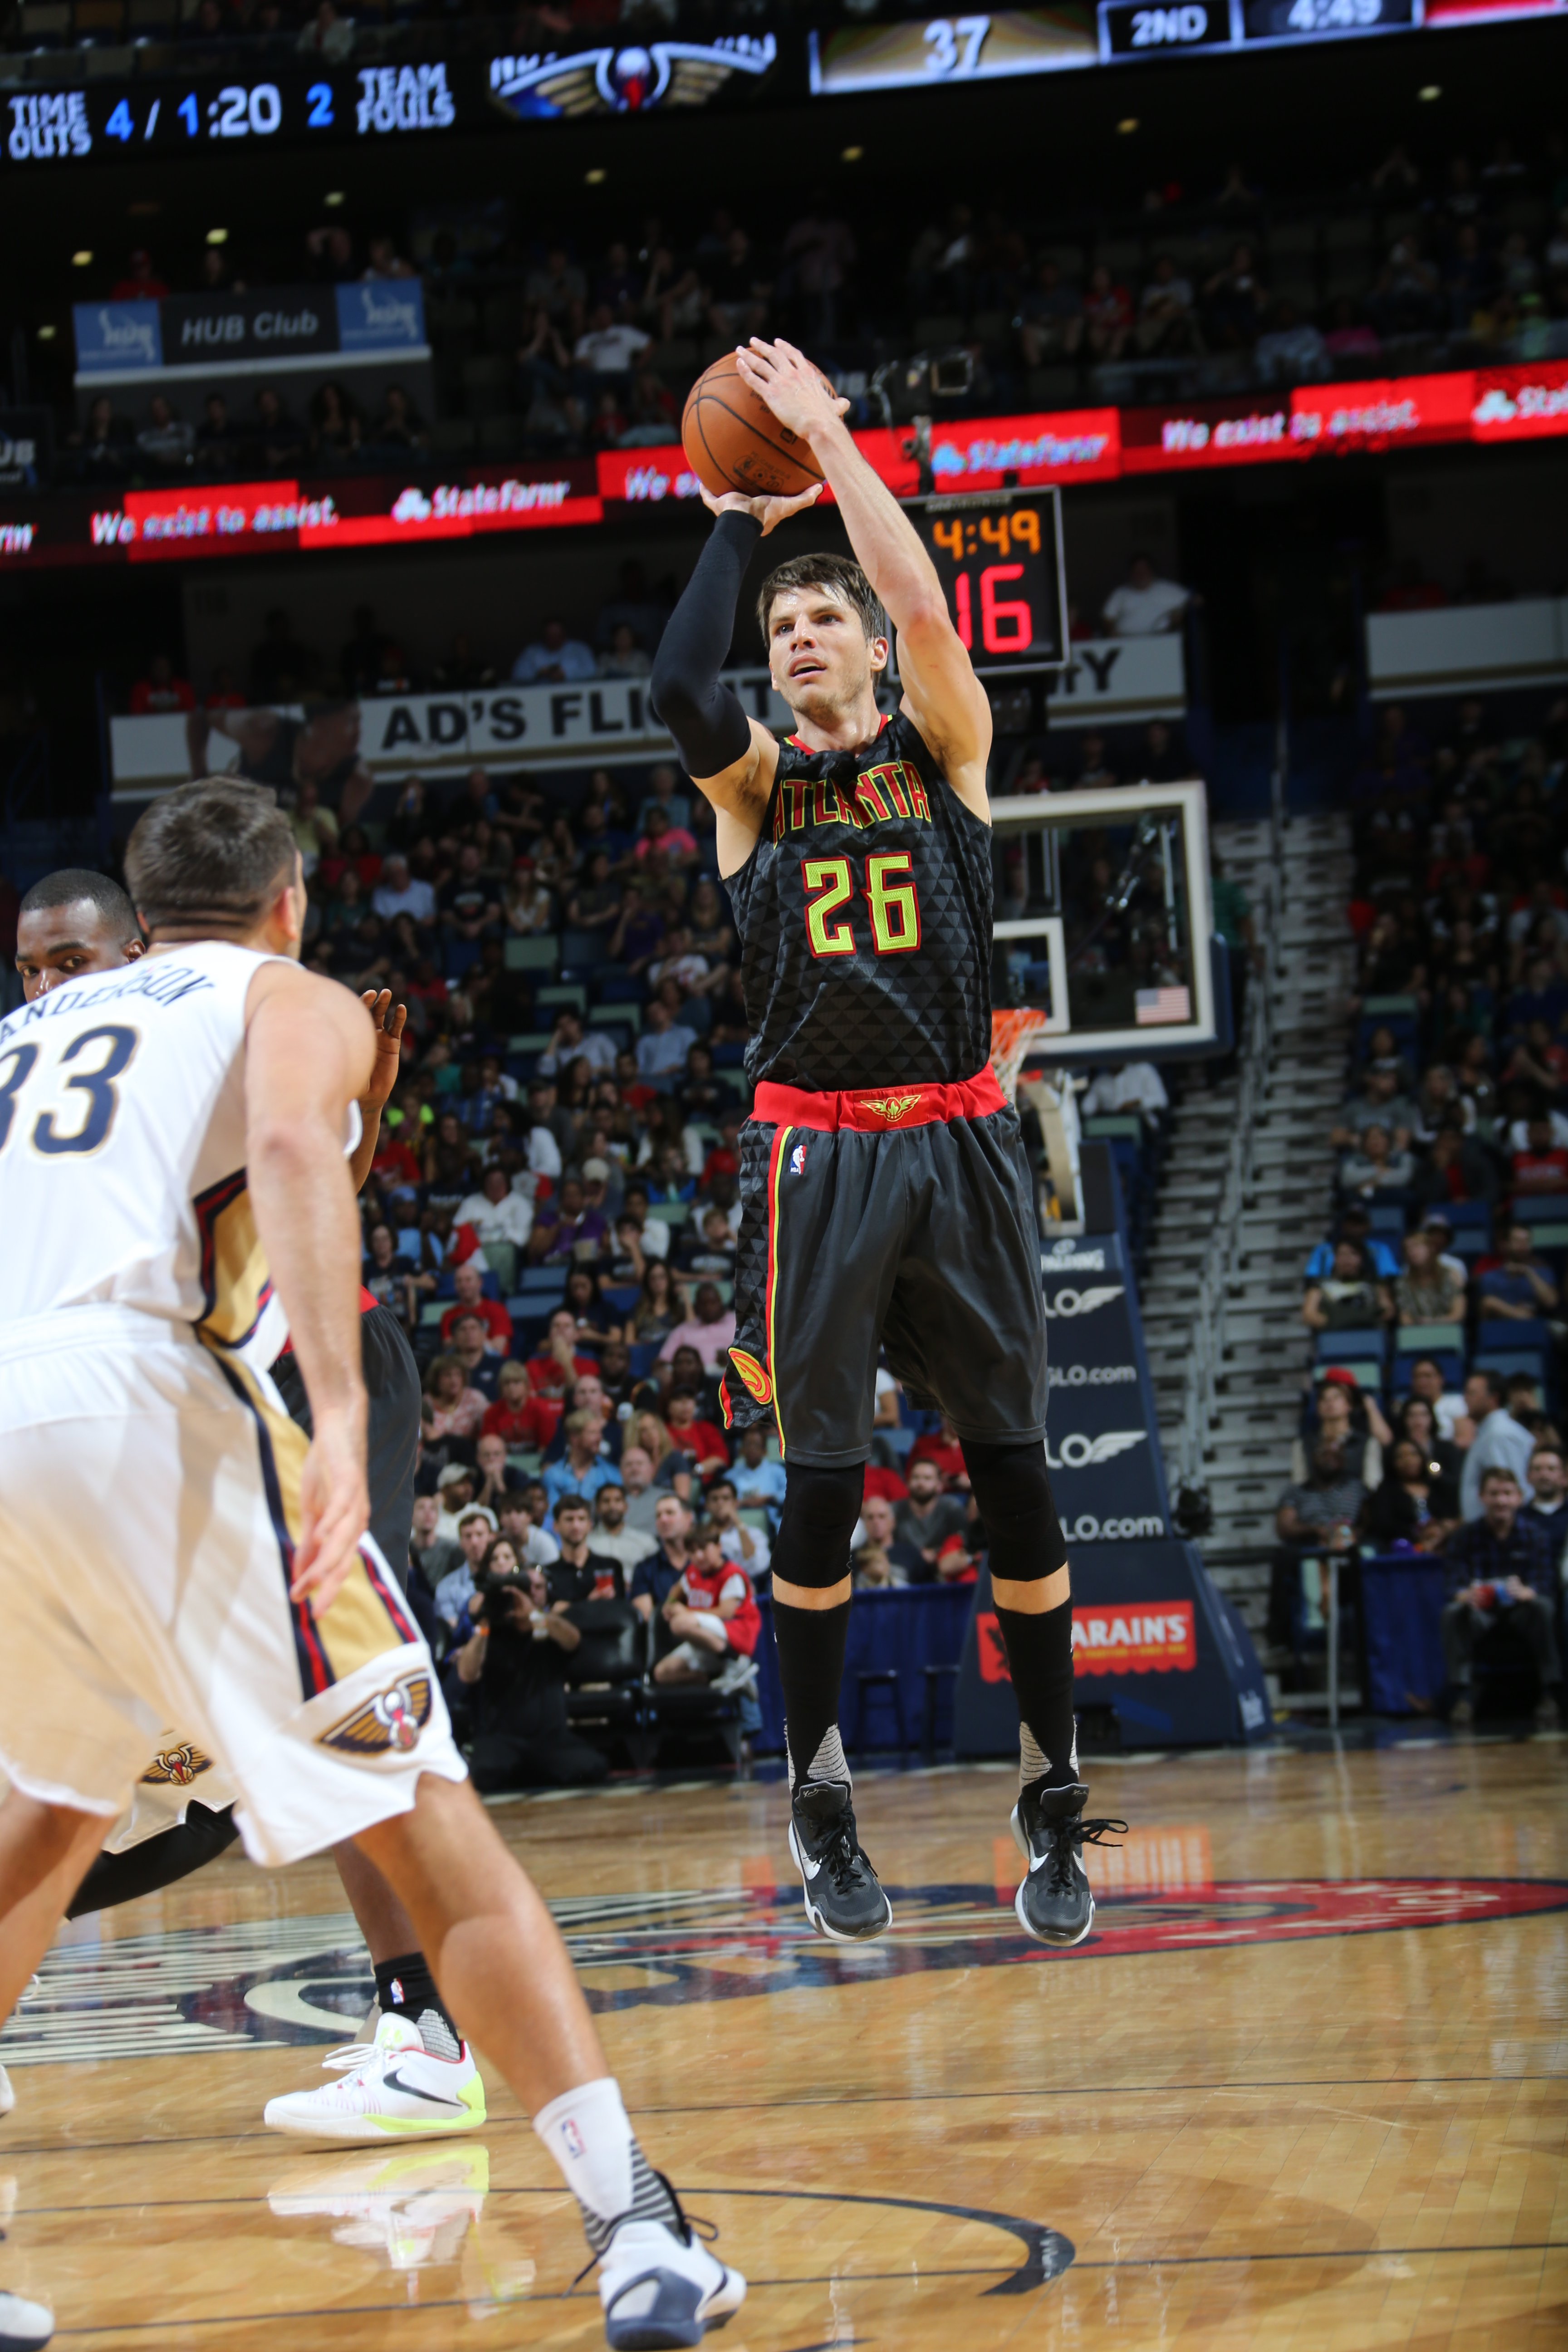 NEW ORLEANS, LA - NOVEMBER 6:  Kyle Korver #26 of the Atlanta Hawks shoots the ball against the New Orleans Pelicans on November 6, 2015 at Smoothie King Center in New Orleans, Louisiana. (Photo by Layne Murdoch/NBAE via Getty Images)